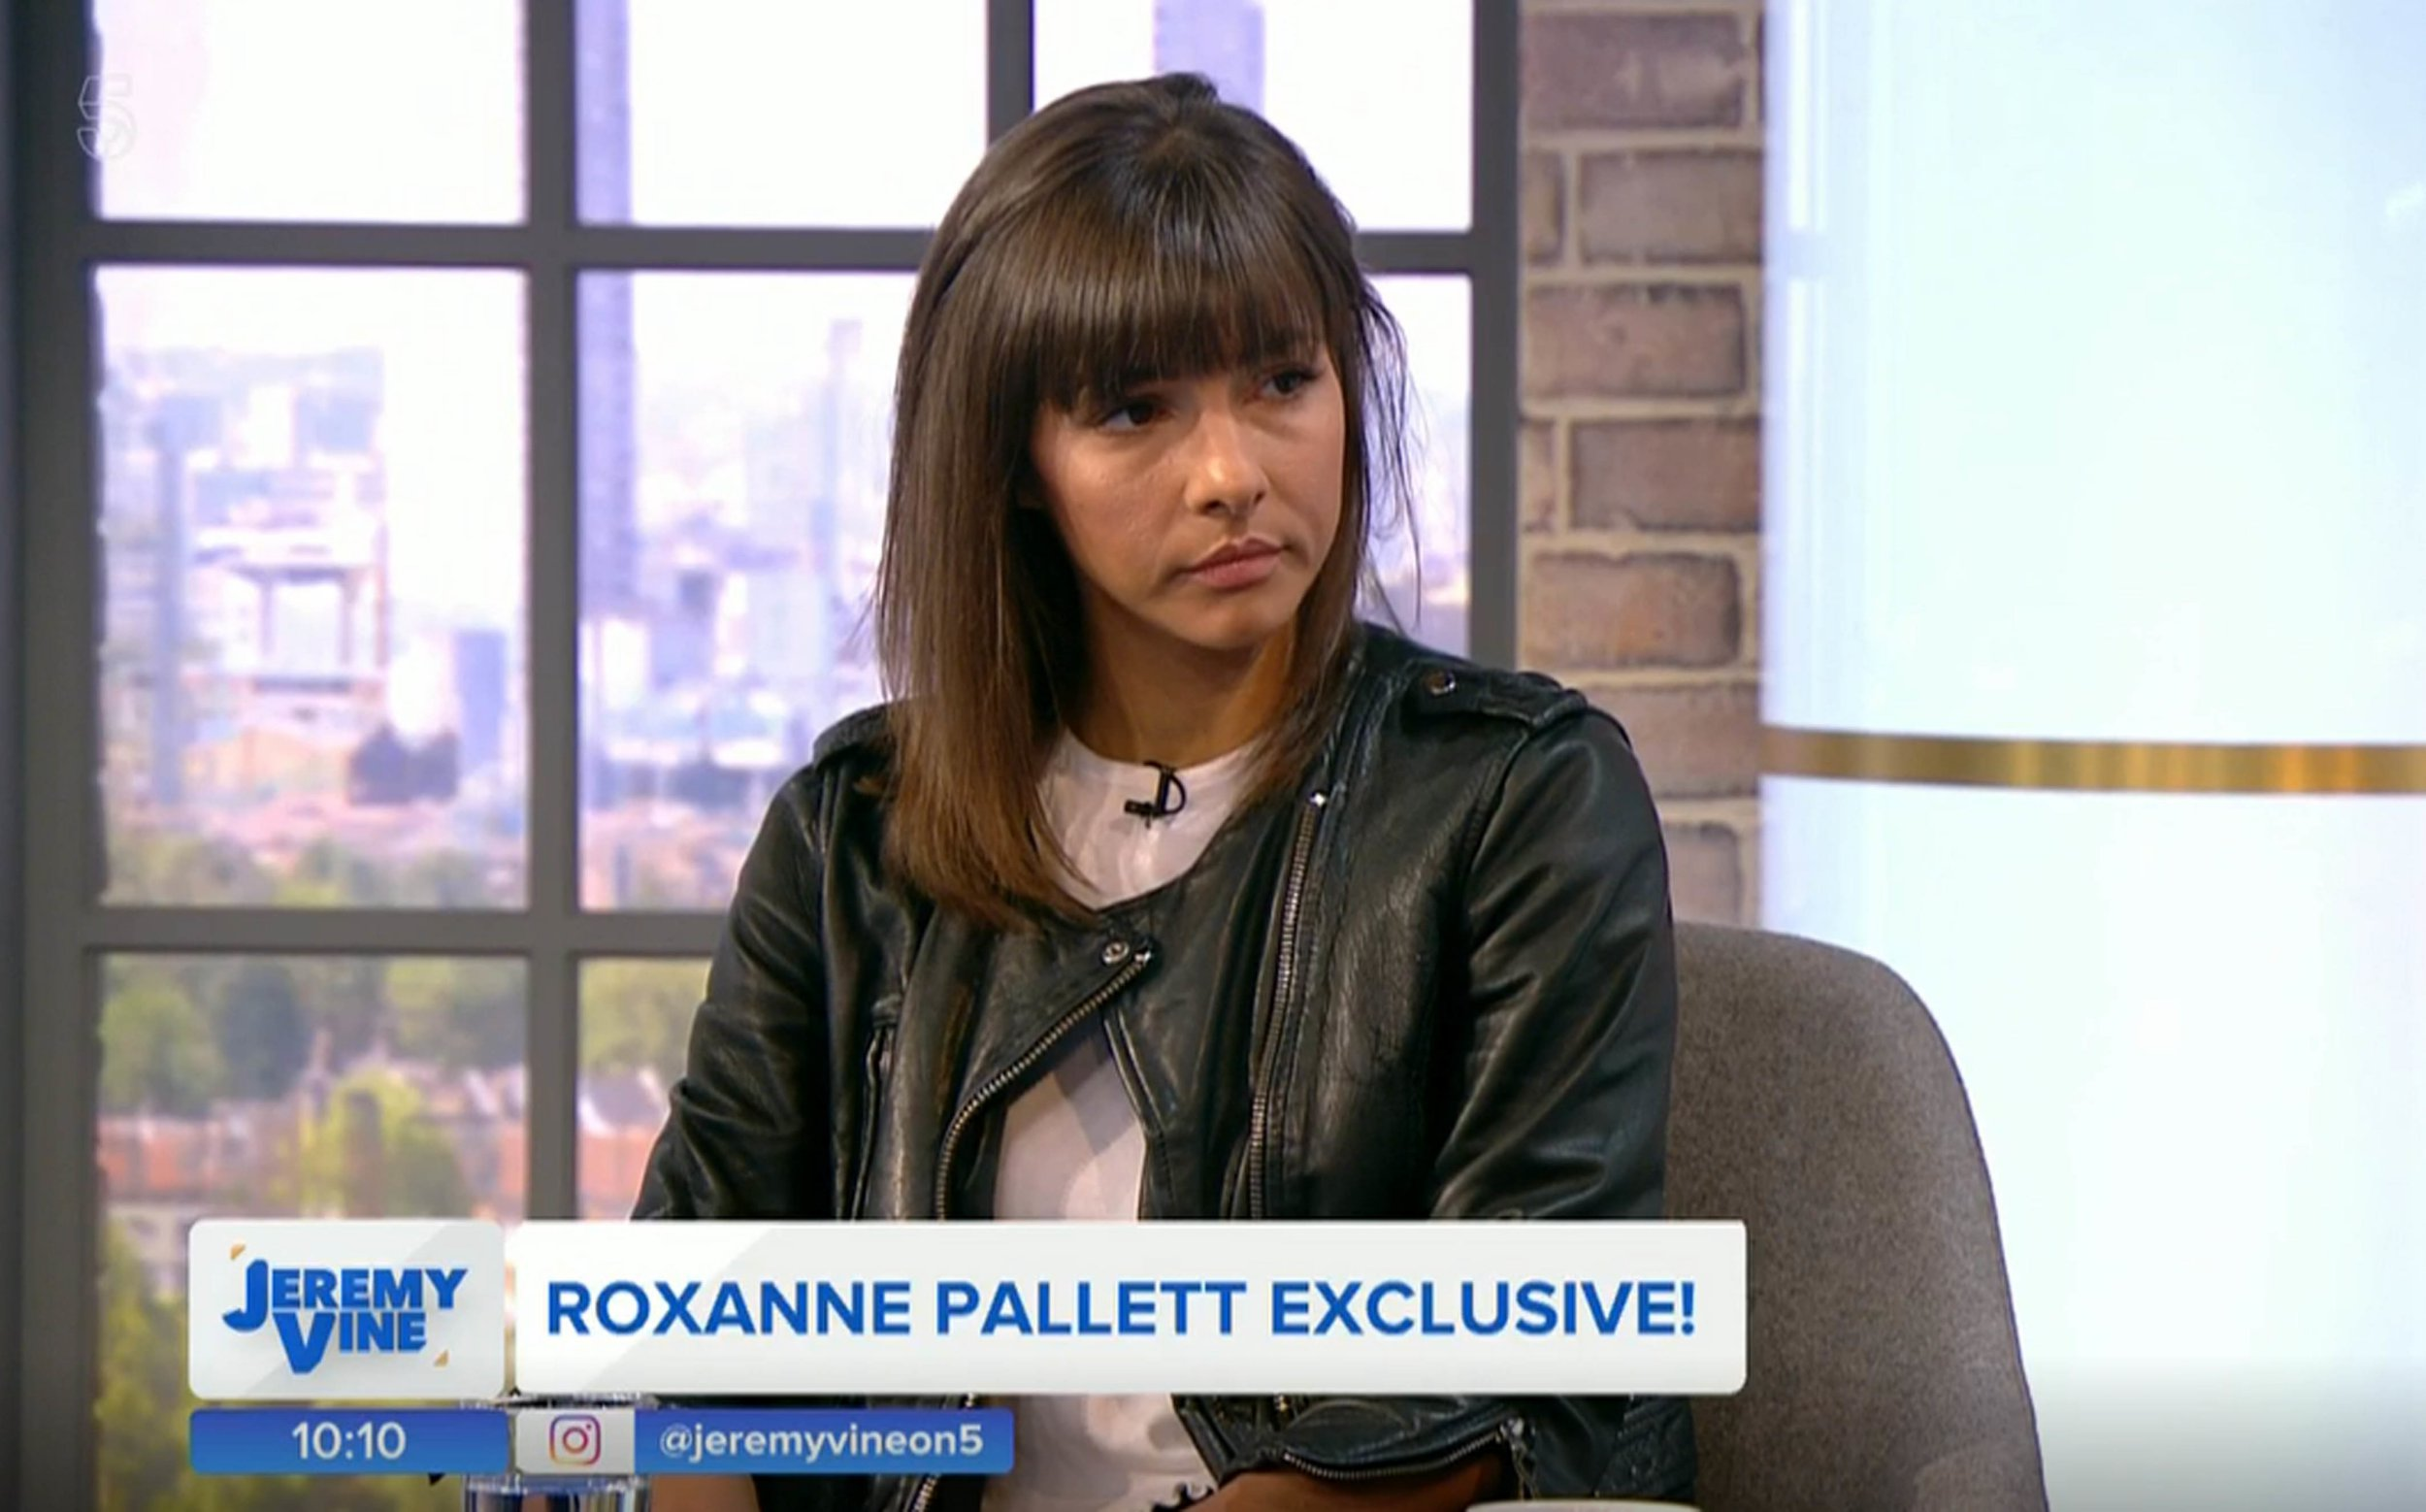 "Undated handout photo issued by Channel 5 of Roxanne Pallett, giving her first interview since leaving the Celebrity Big Brother House, during the launch of Channel 5 current affairs show Jeremy Vine. Pallett has said she ""got it wrong"" after she claimed that actor Ryan Thomas punched her in the Celebrity Big Brother house. PRESS ASSOCIATION Photo. Issue date: Monday September 3, 2018. Speaking on Channel 5's Jeremy Vine, the former Emmerdale star said: ""At the time it hurt. But when I looked back on that footage as soon I left the house - the first thing I did was view that clip - and I got it wrong, I really got it wrong."" See PA story SHOWBIZ Pallett. Photo credit should read: Channel 5/PA Wire NOTE TO EDITORS: This handout photo may only be used in for editorial reporting purposes for the contemporaneous illustration of events, things or the people in the image or facts mentioned in the caption. Reuse of the picture may require further permission from the copyright holder."